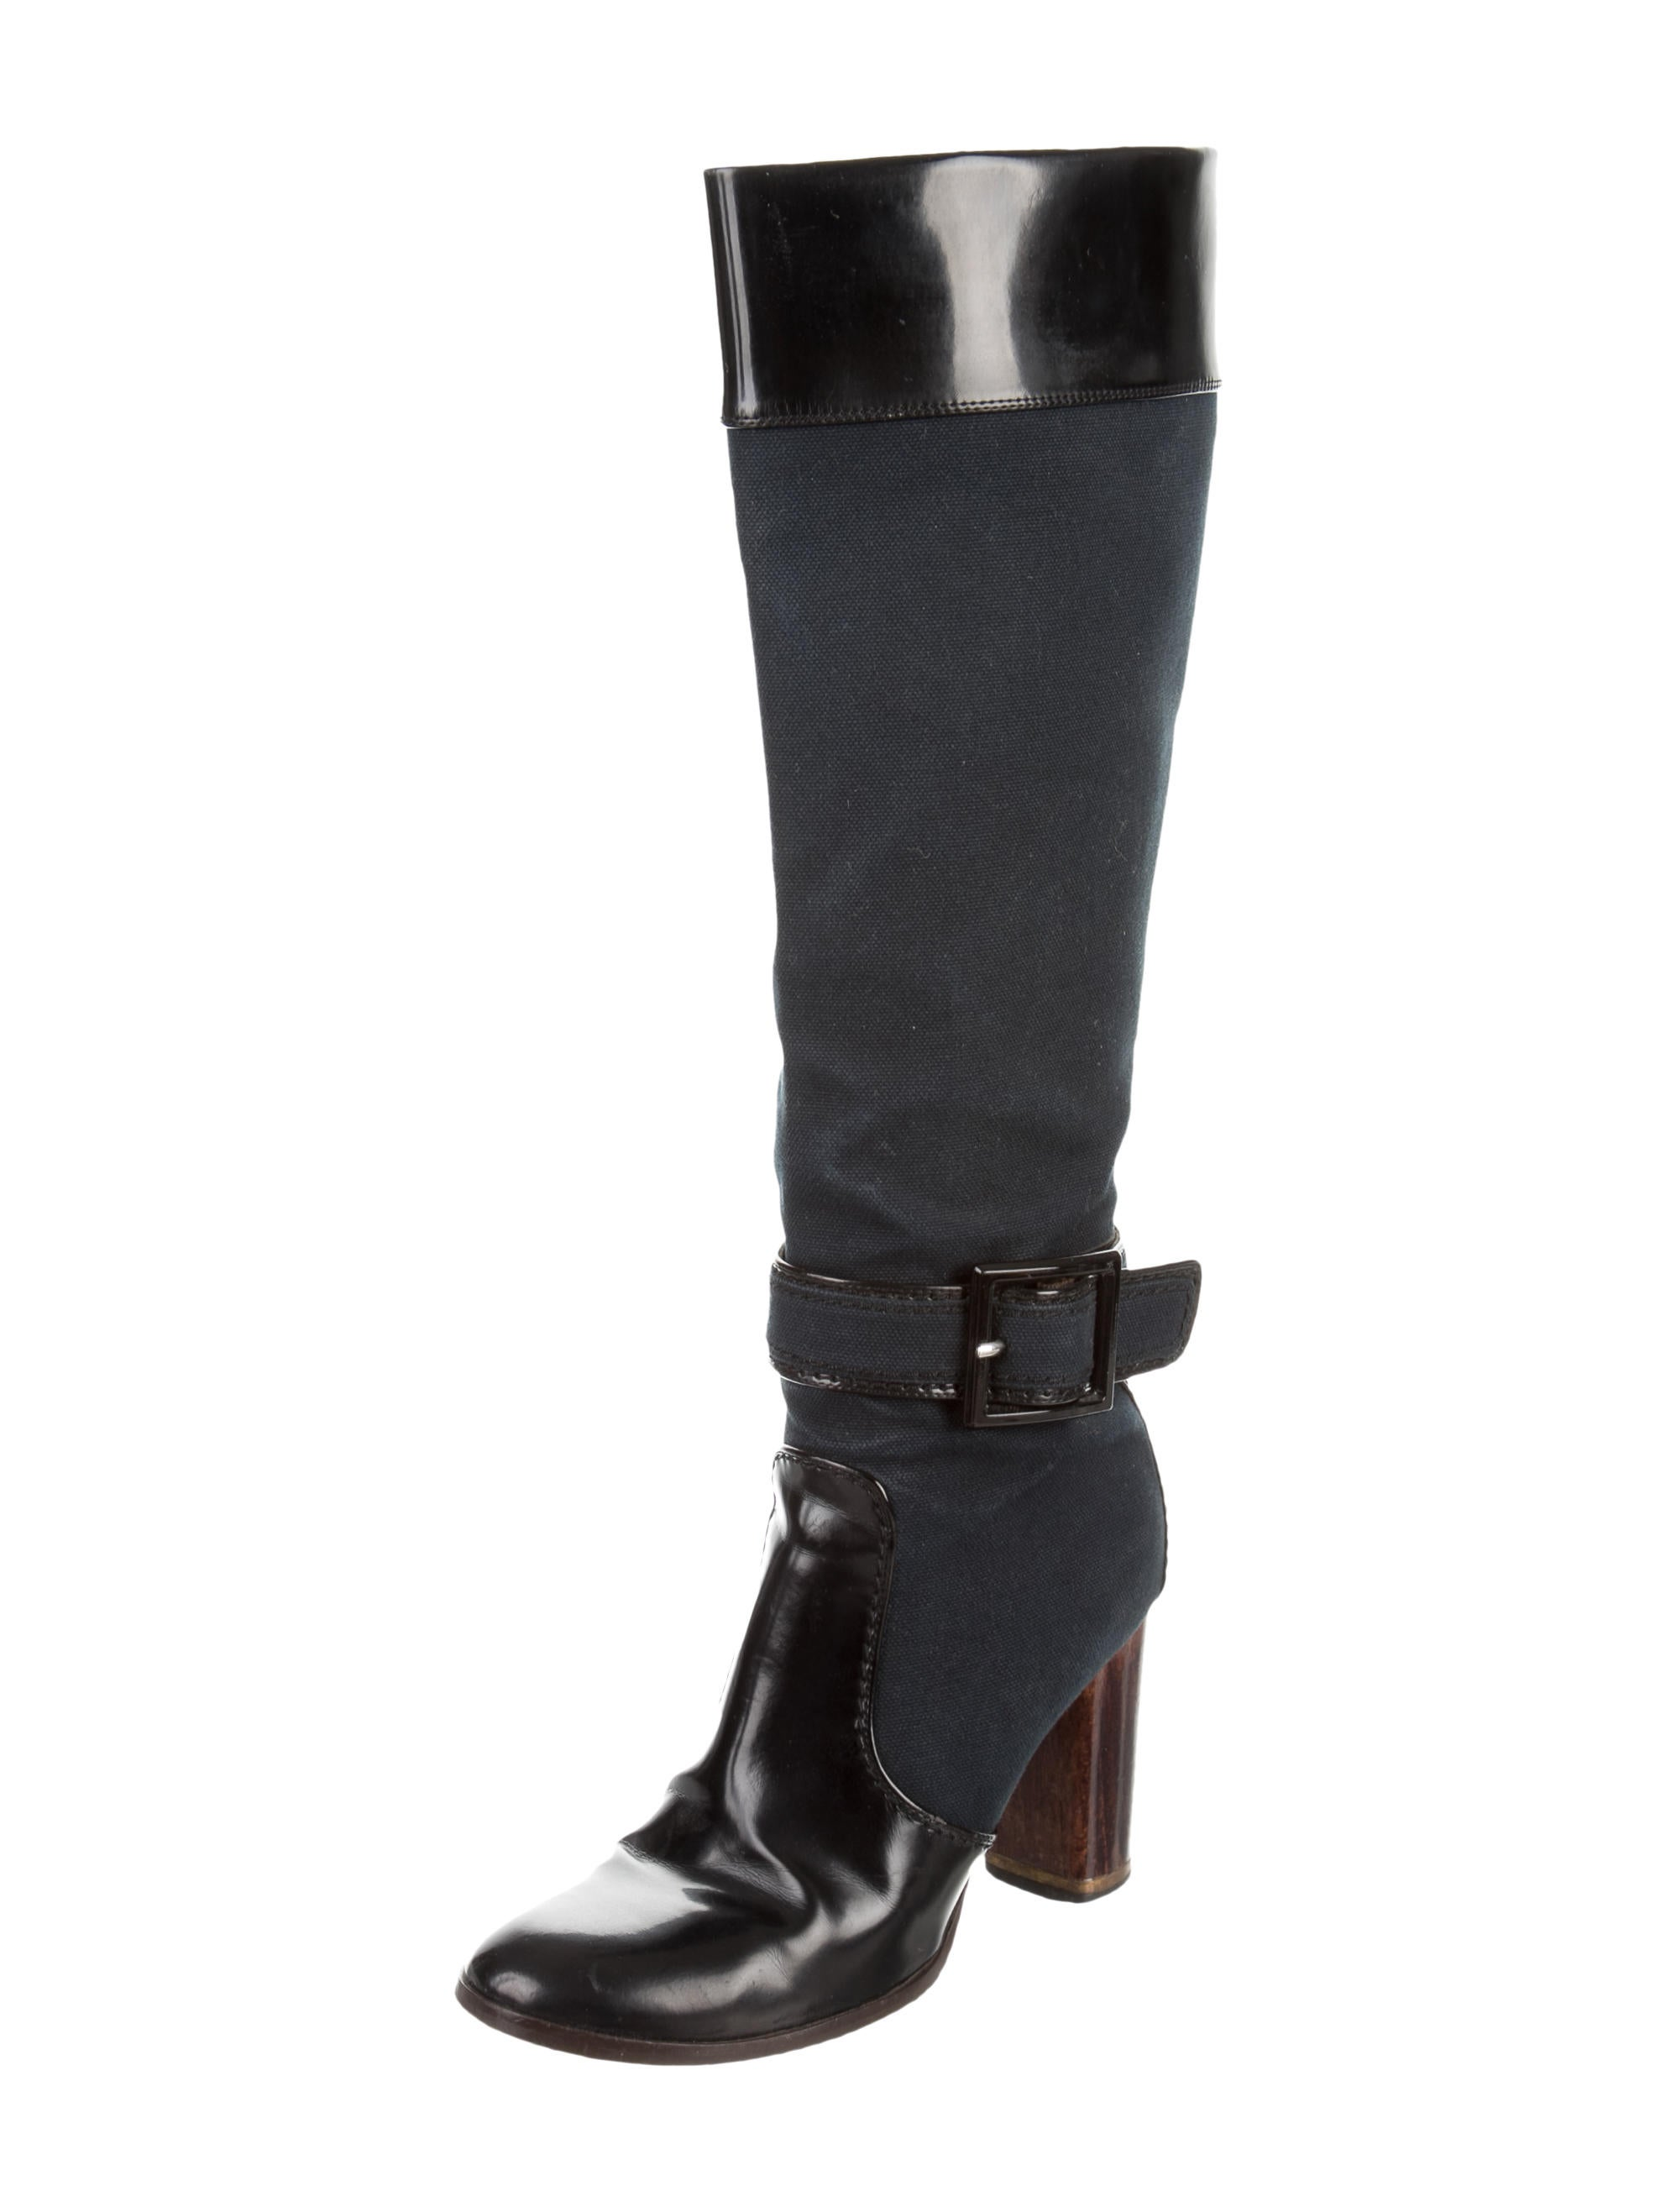 stella mccartney canvas knee high boots shoes stl42569